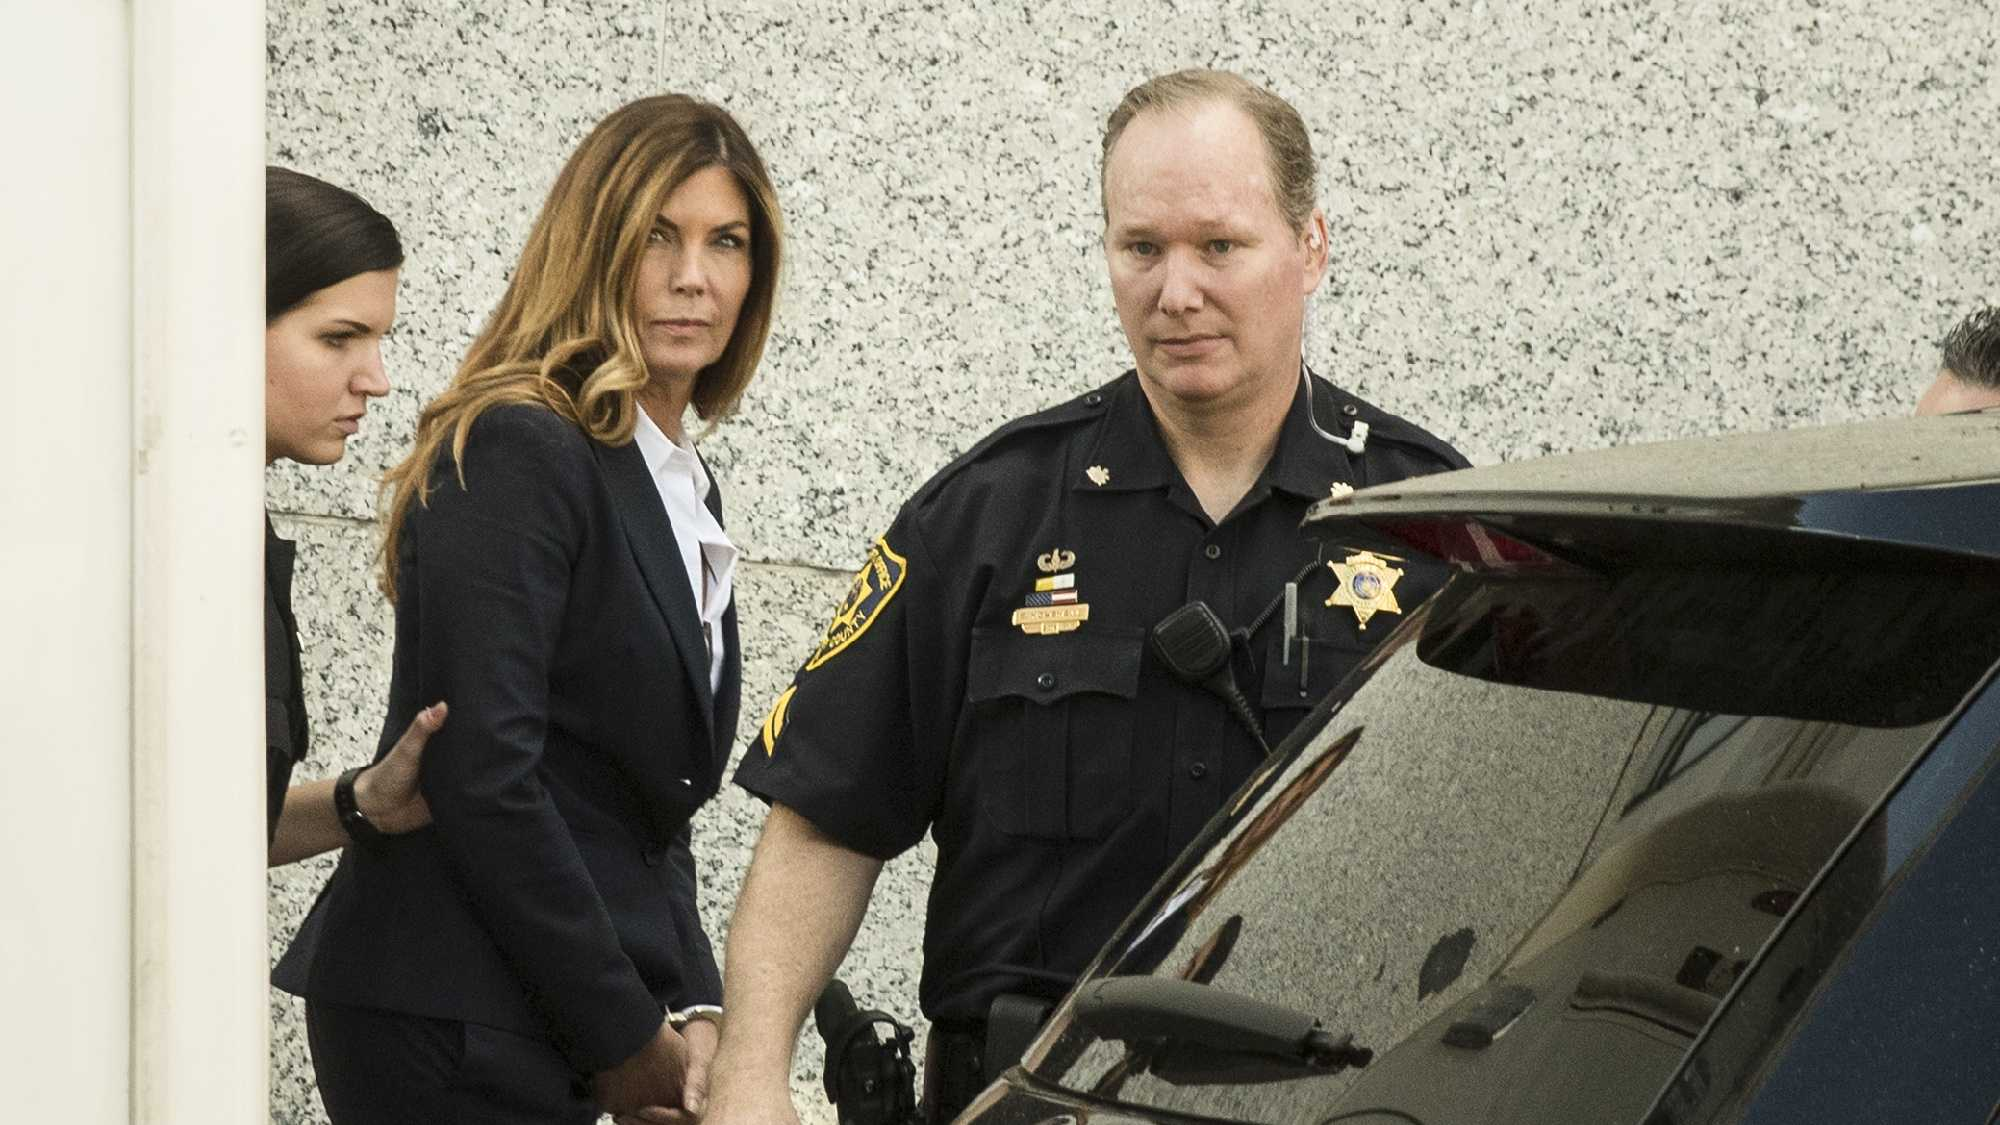 Former Pennsylvania Attorney General Kathleen Kane is escorted from Montgomery County courthouse after her sentencing hearing in Norristown, Pa, Monday, Oct. 24, 2016.